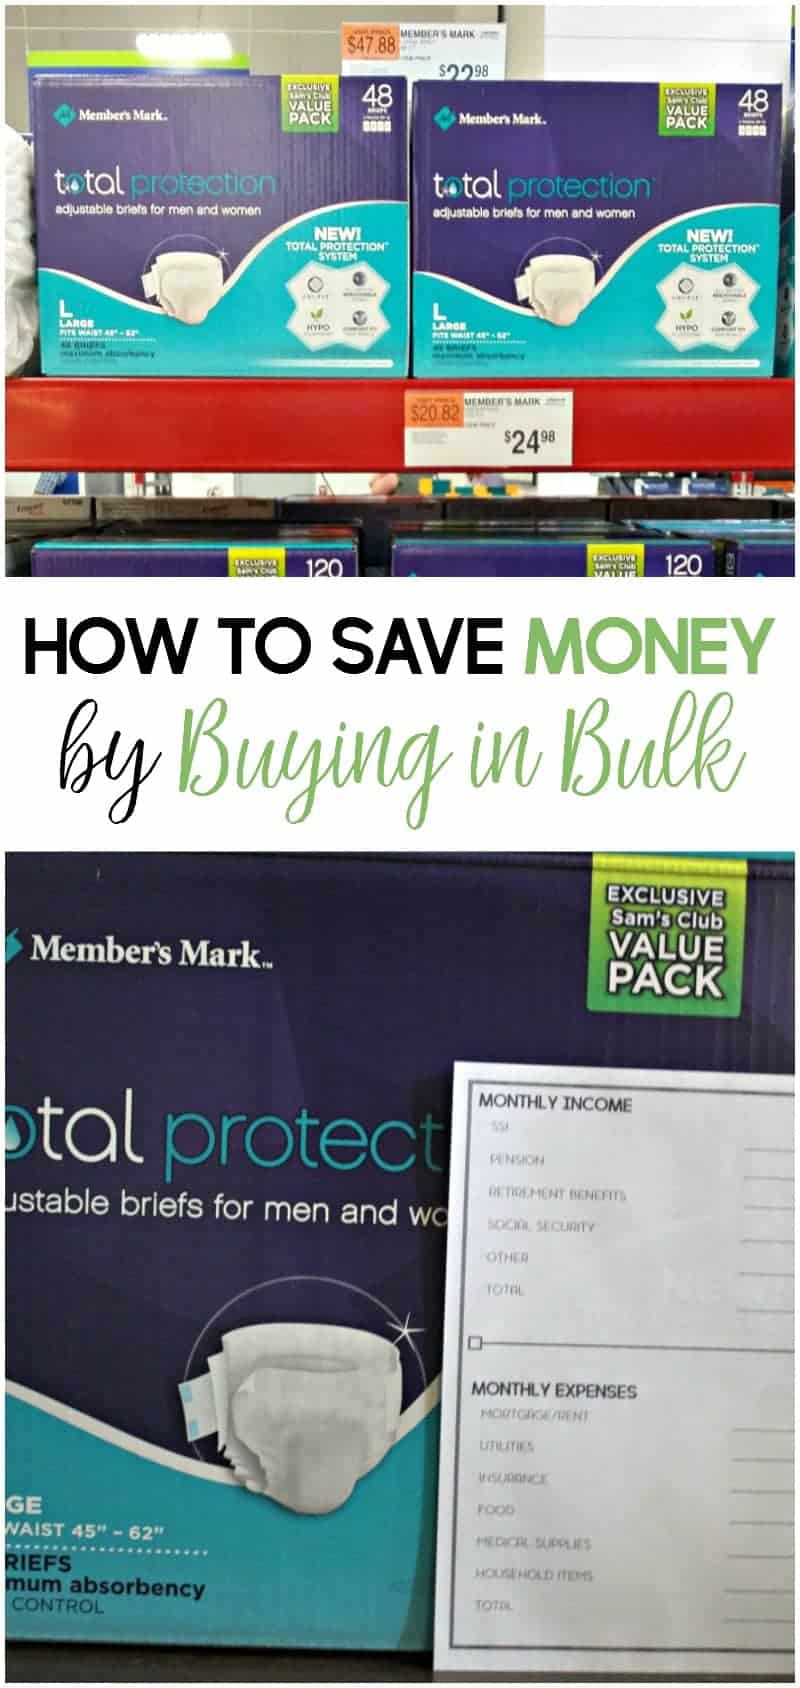 Caregiving expenses can add up quickly. Here's how to save money by buying in bulk.